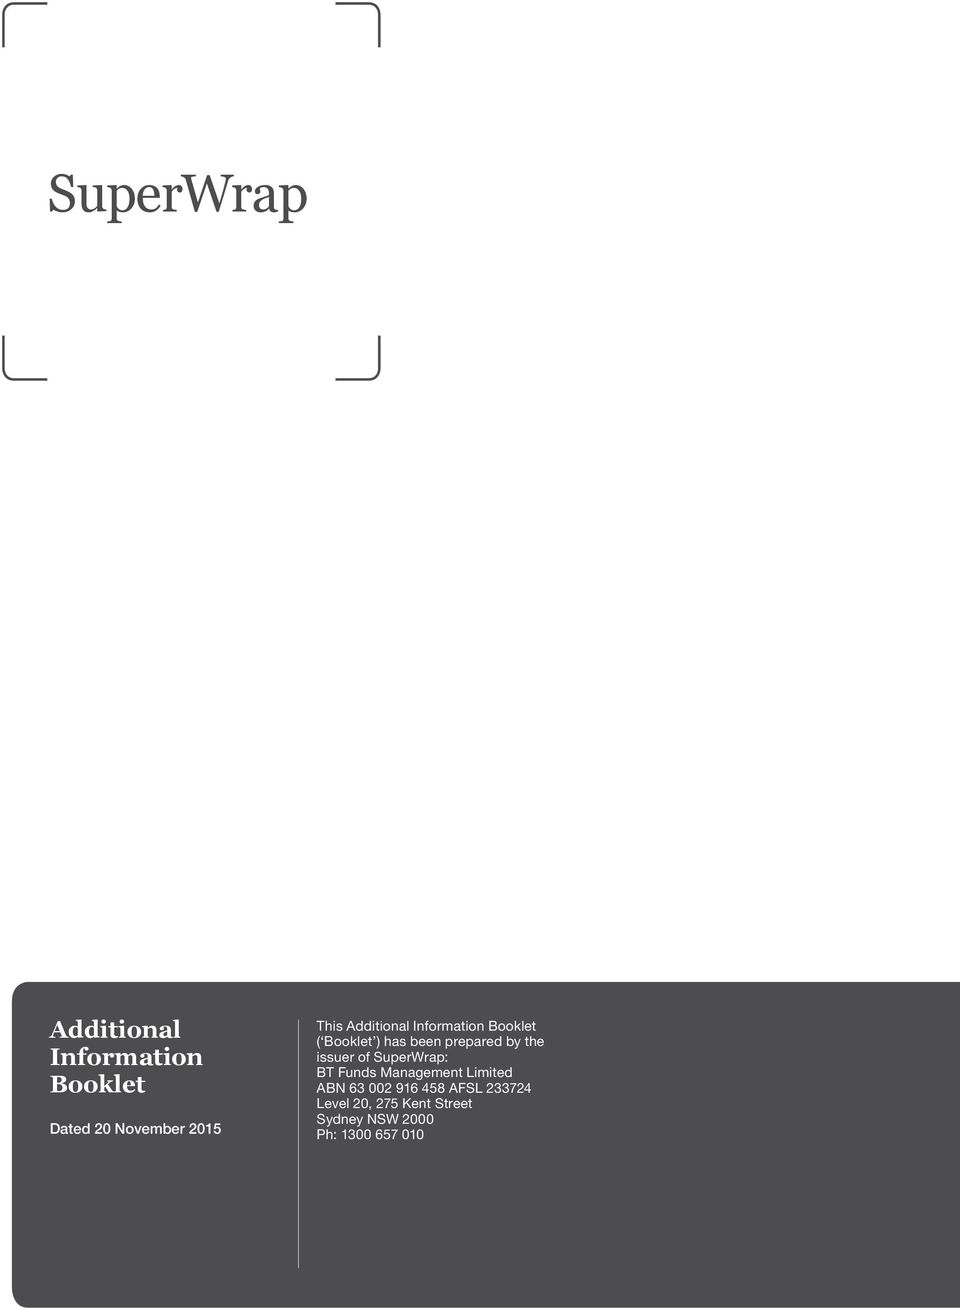 issuer of SuperWrap: BT Funds Management Limited ABN 63 002 916 458